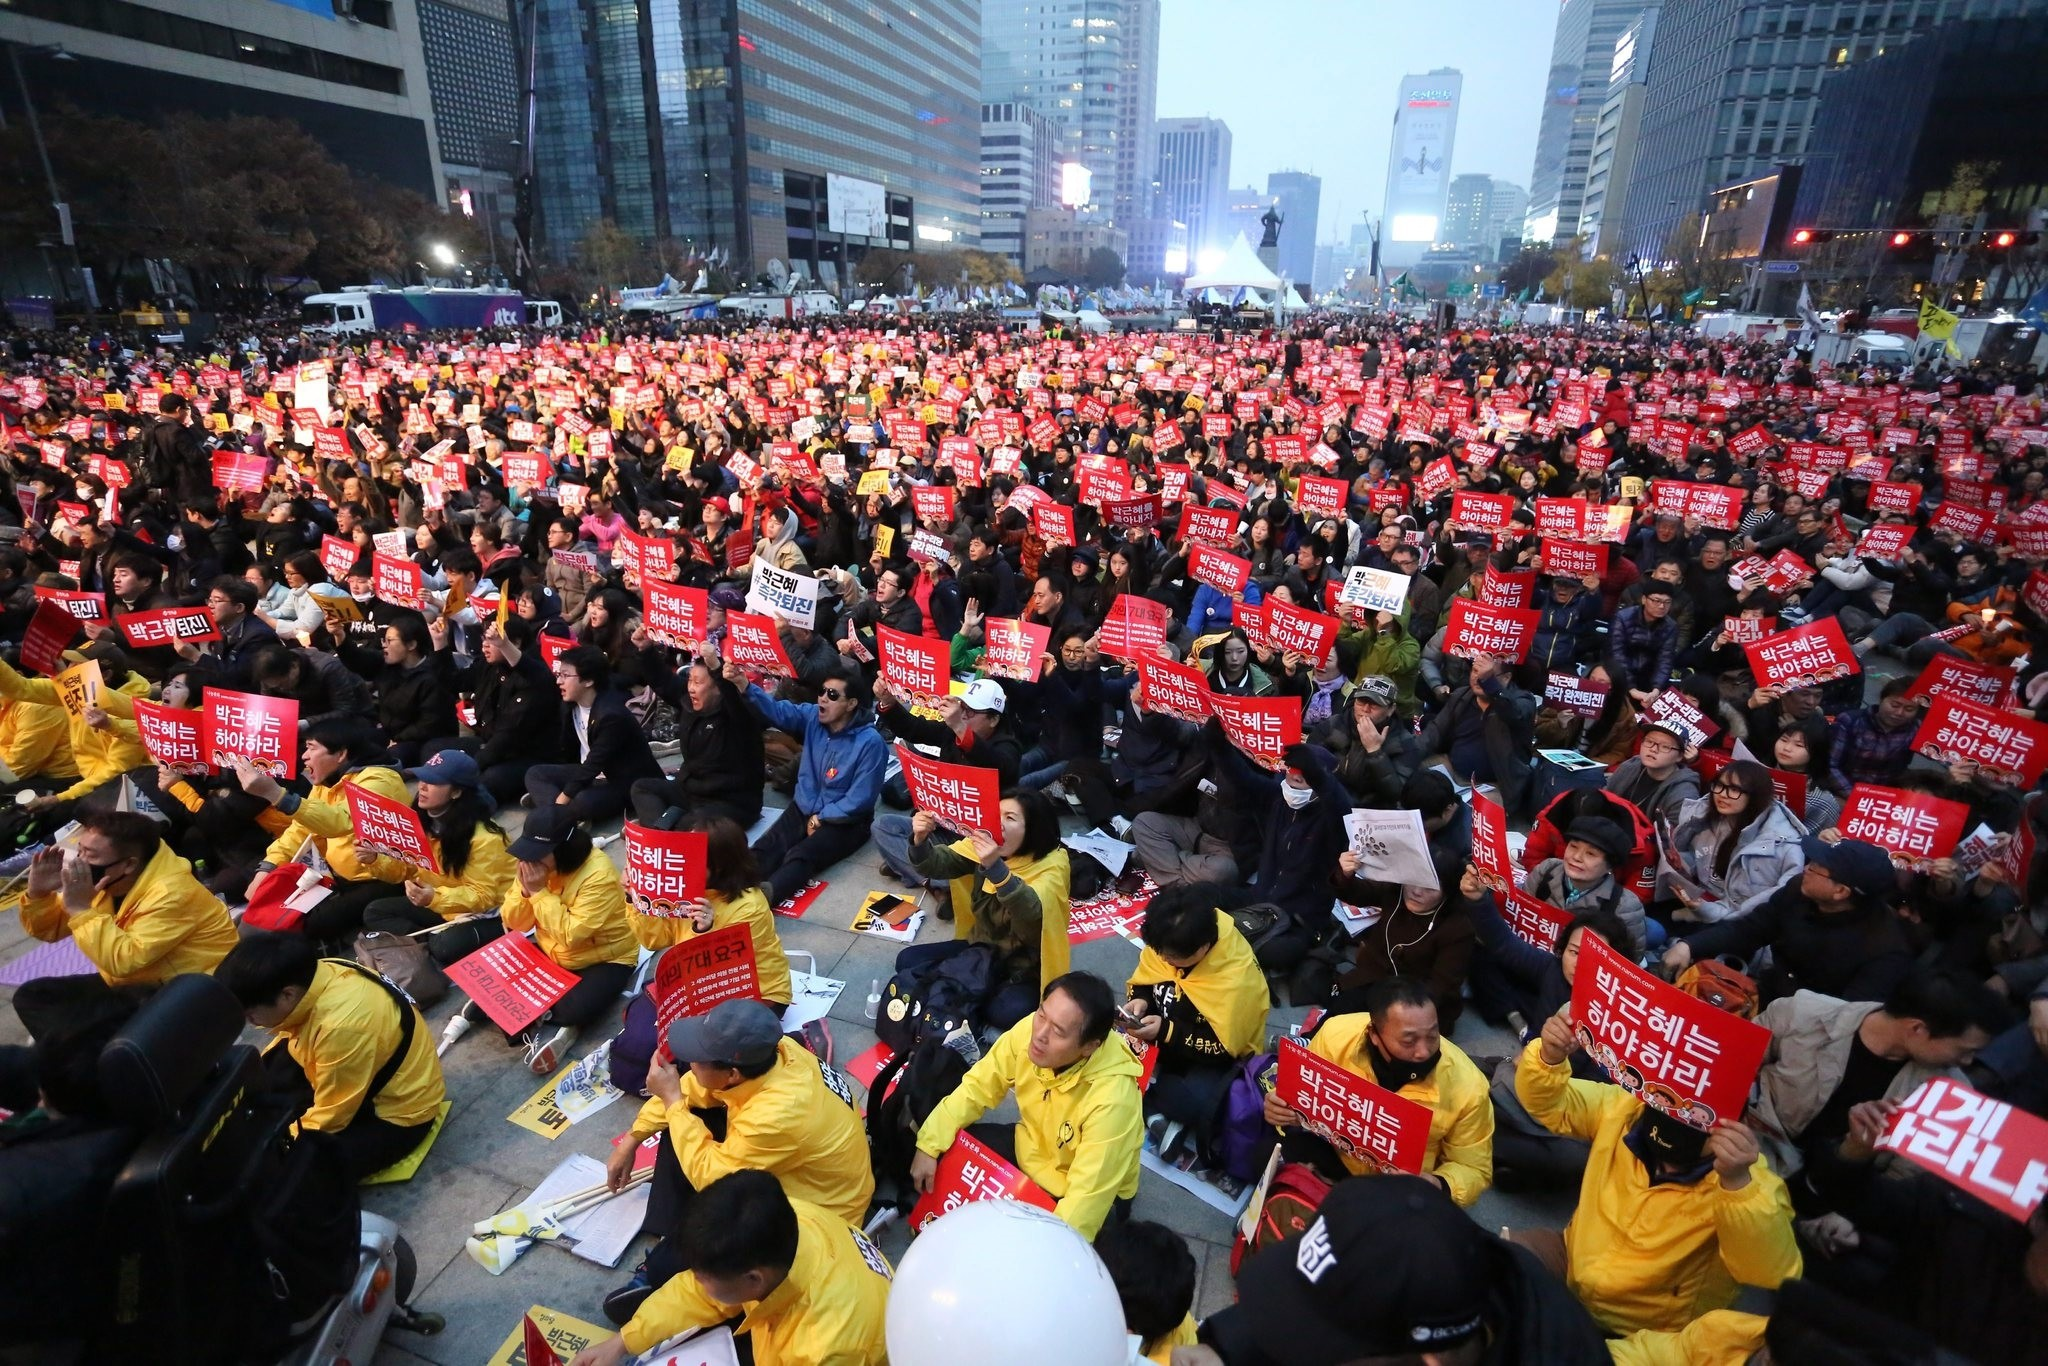 South Koreans shout slogans as they carry placards reading 'Park Geun-Hye Out' during a rally against South Korean President Park Geun-Hye on a main street in Seoul, 19 Nov. 2016. (EPA Photo)